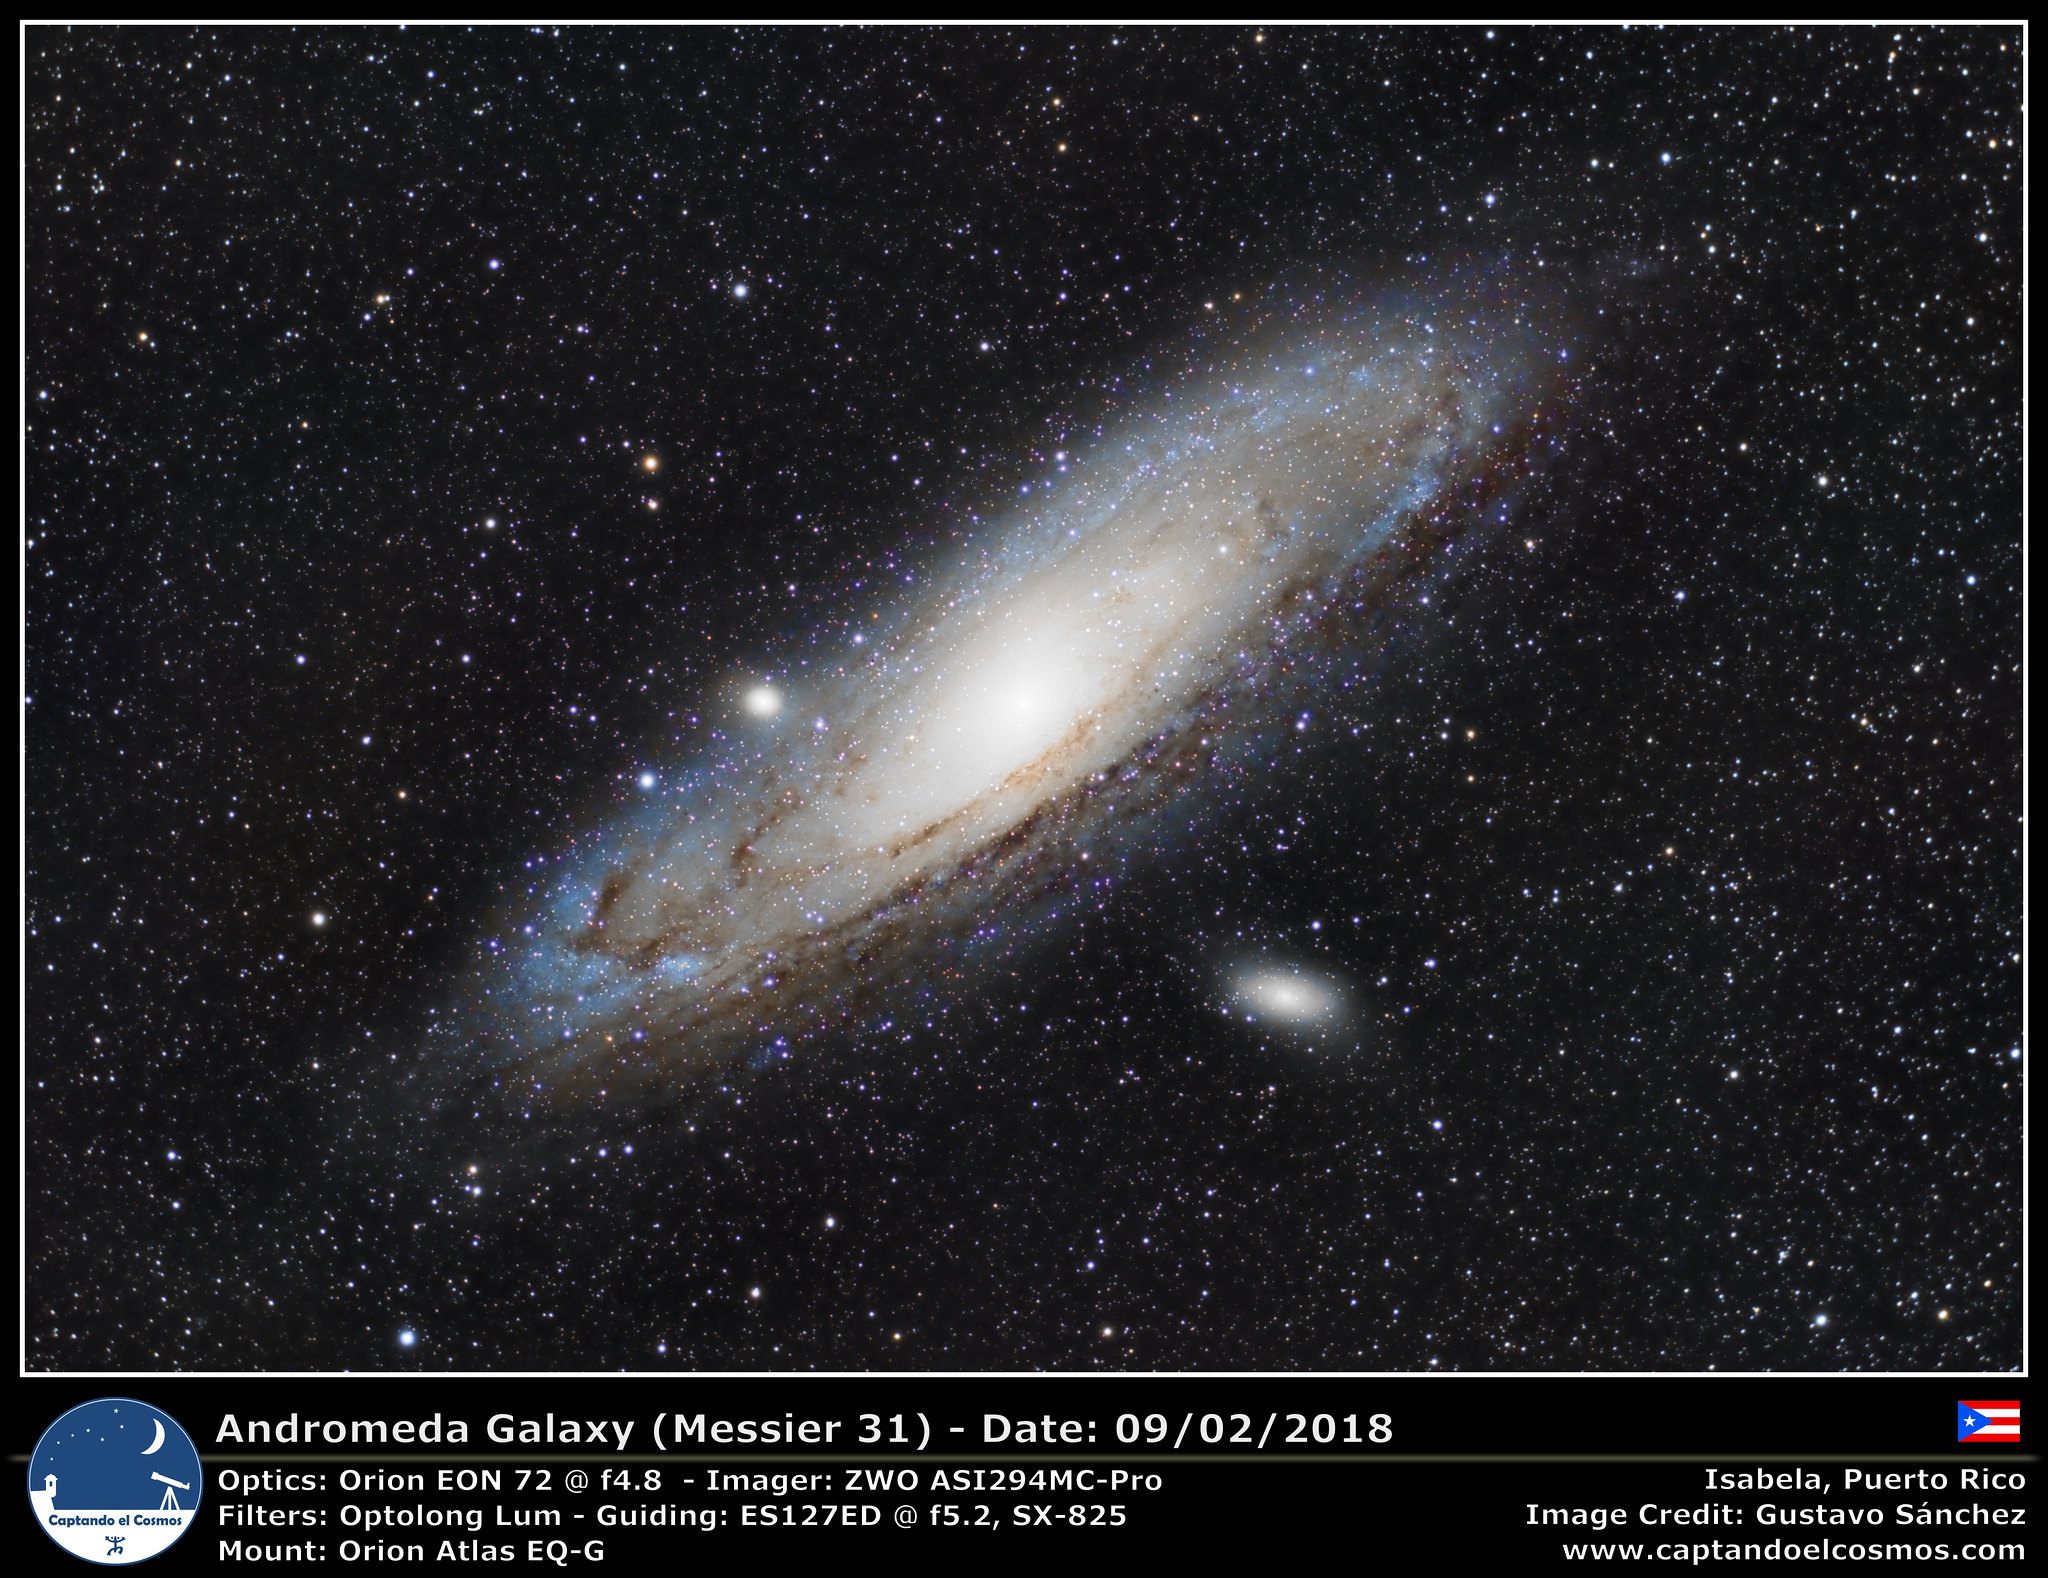 Andromeda Galaxy (Messier 31)